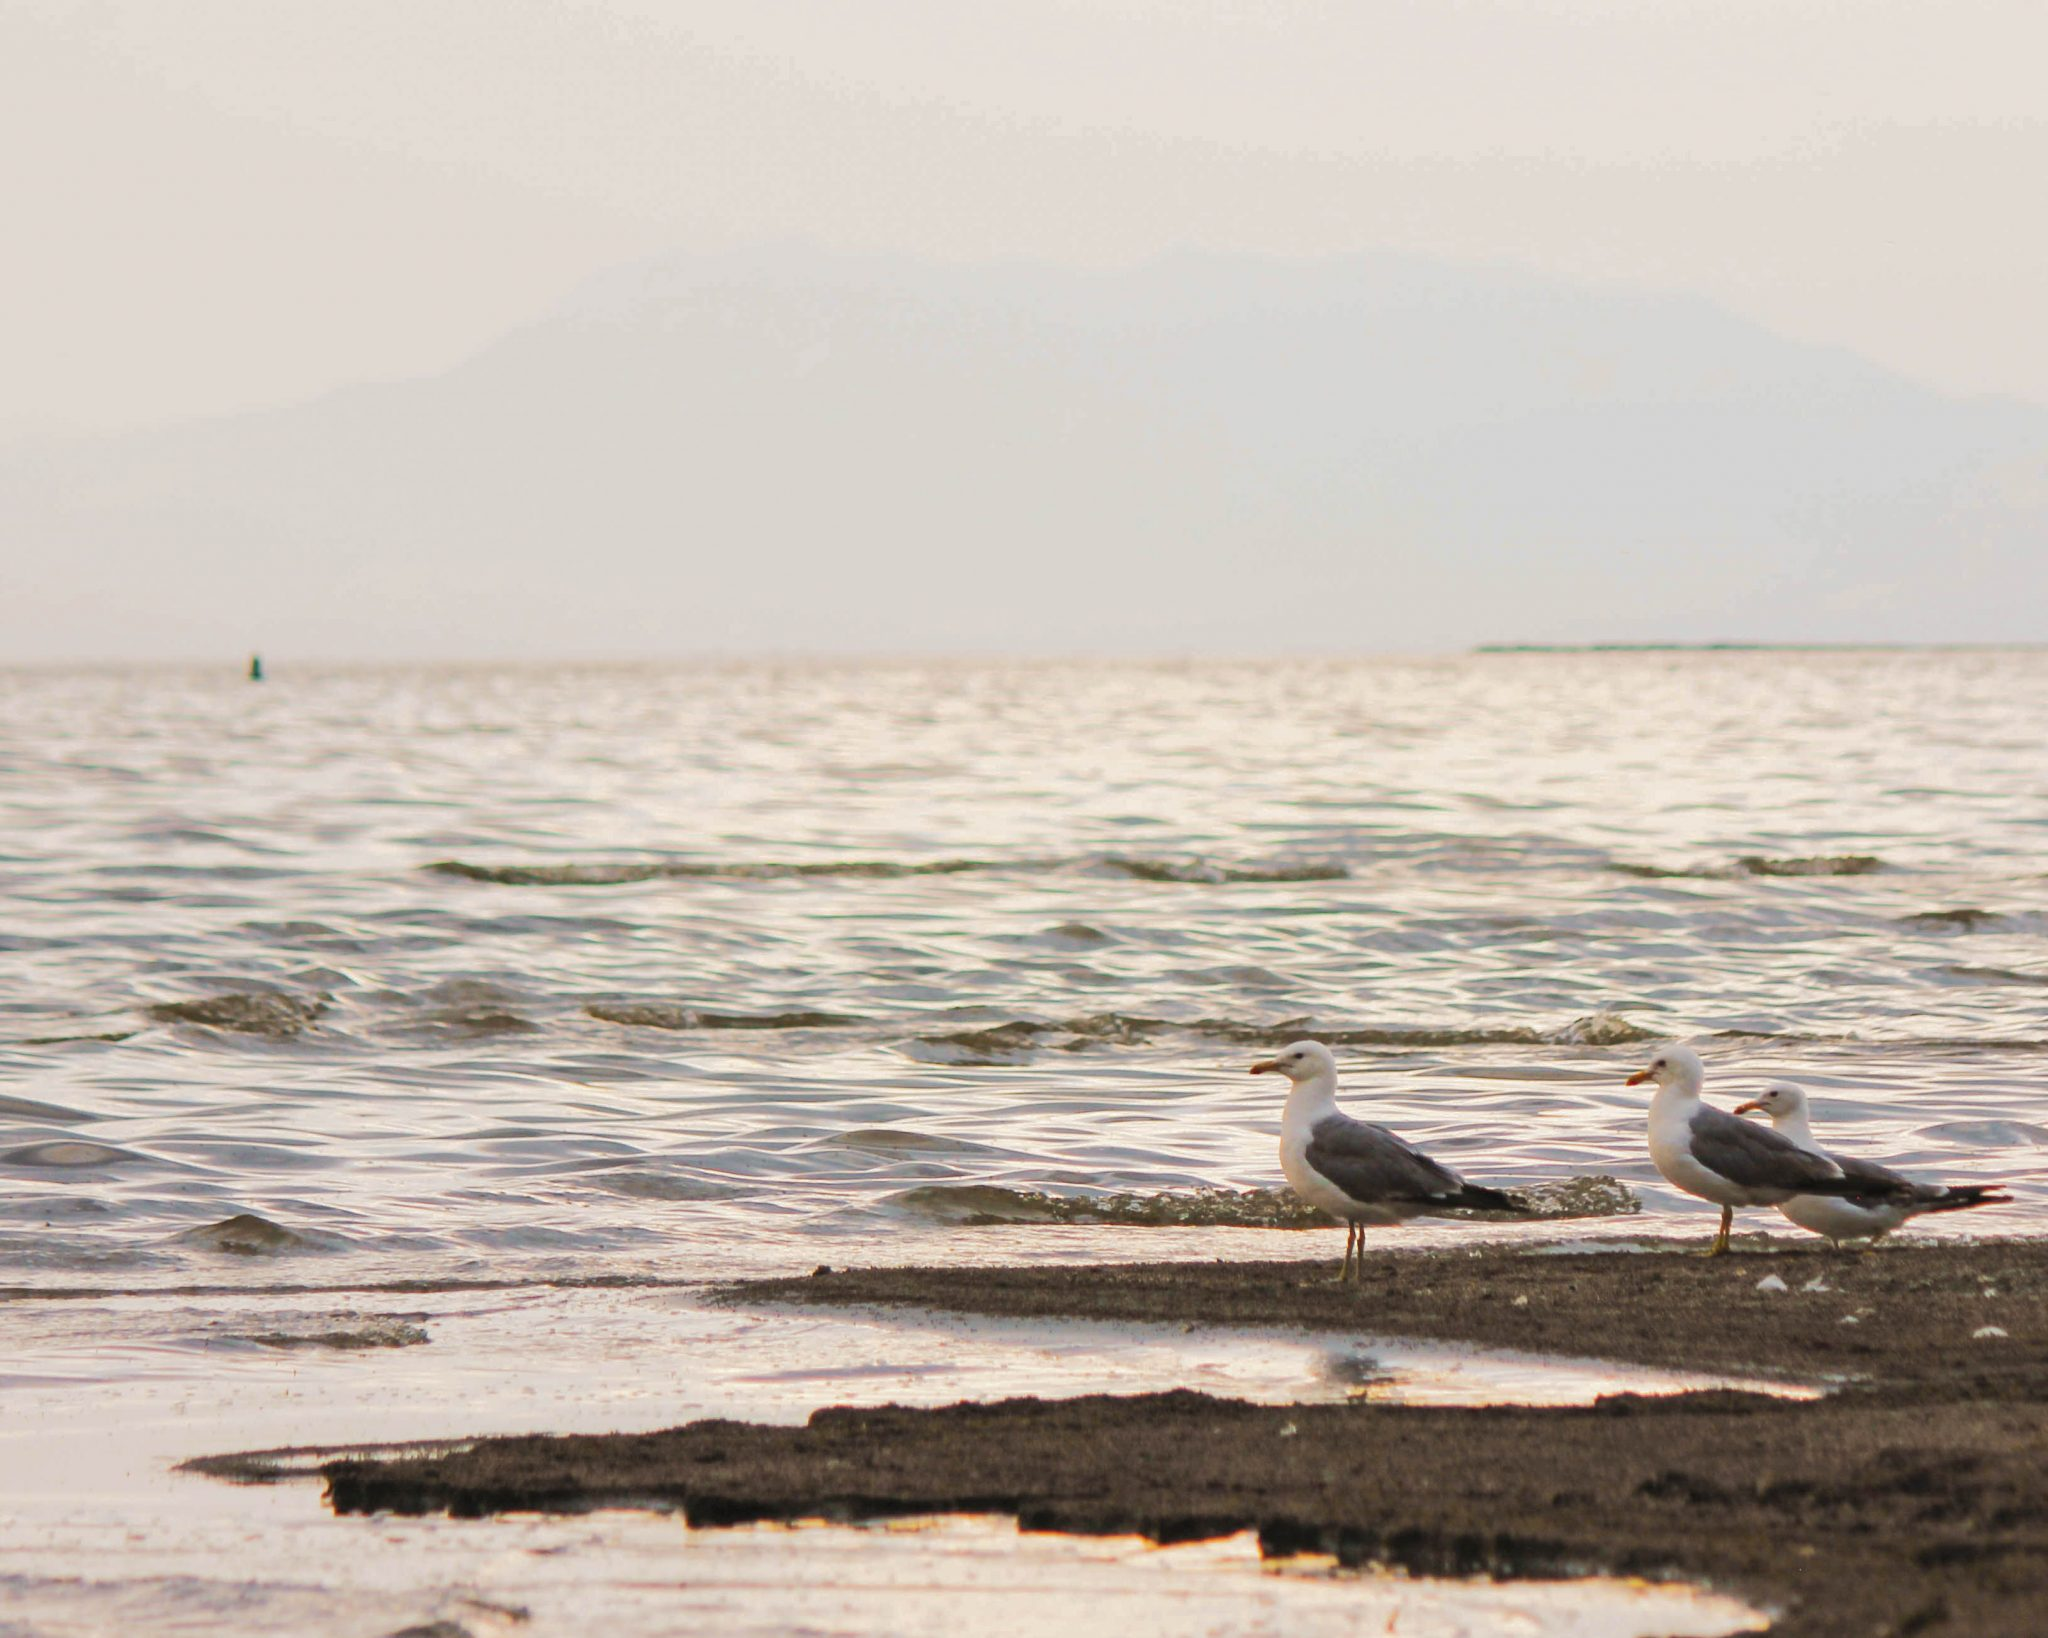 Three seagulls stand on the beach with the great salt lake in the distance